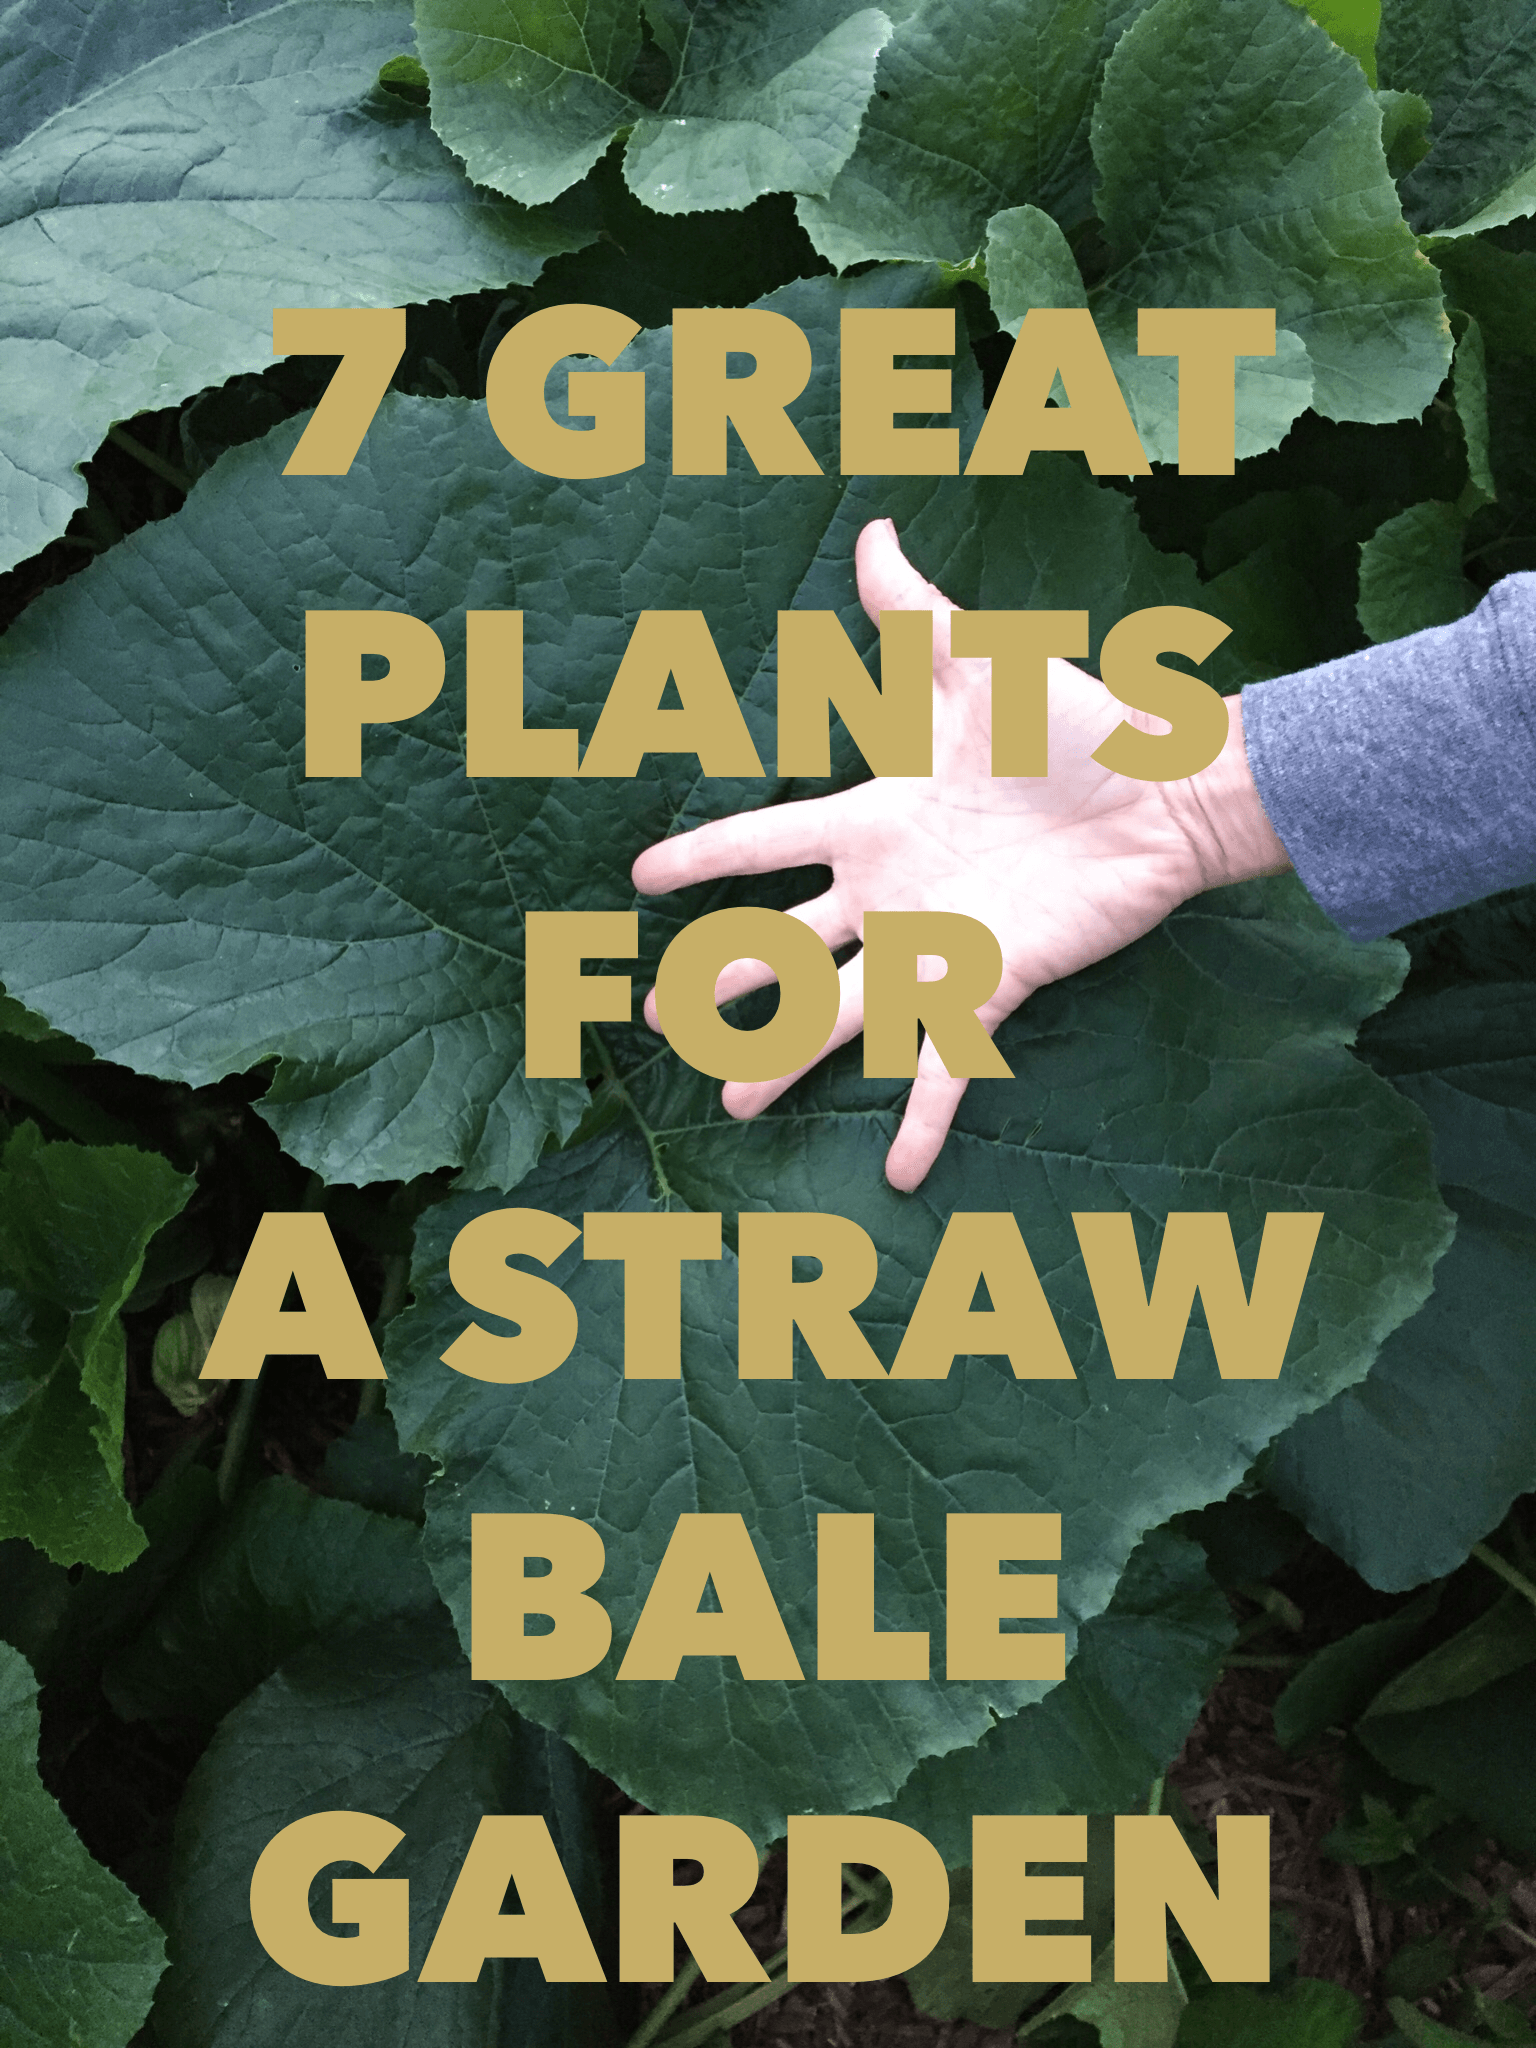 Straw bale gardening lets you grow ve ables without soil